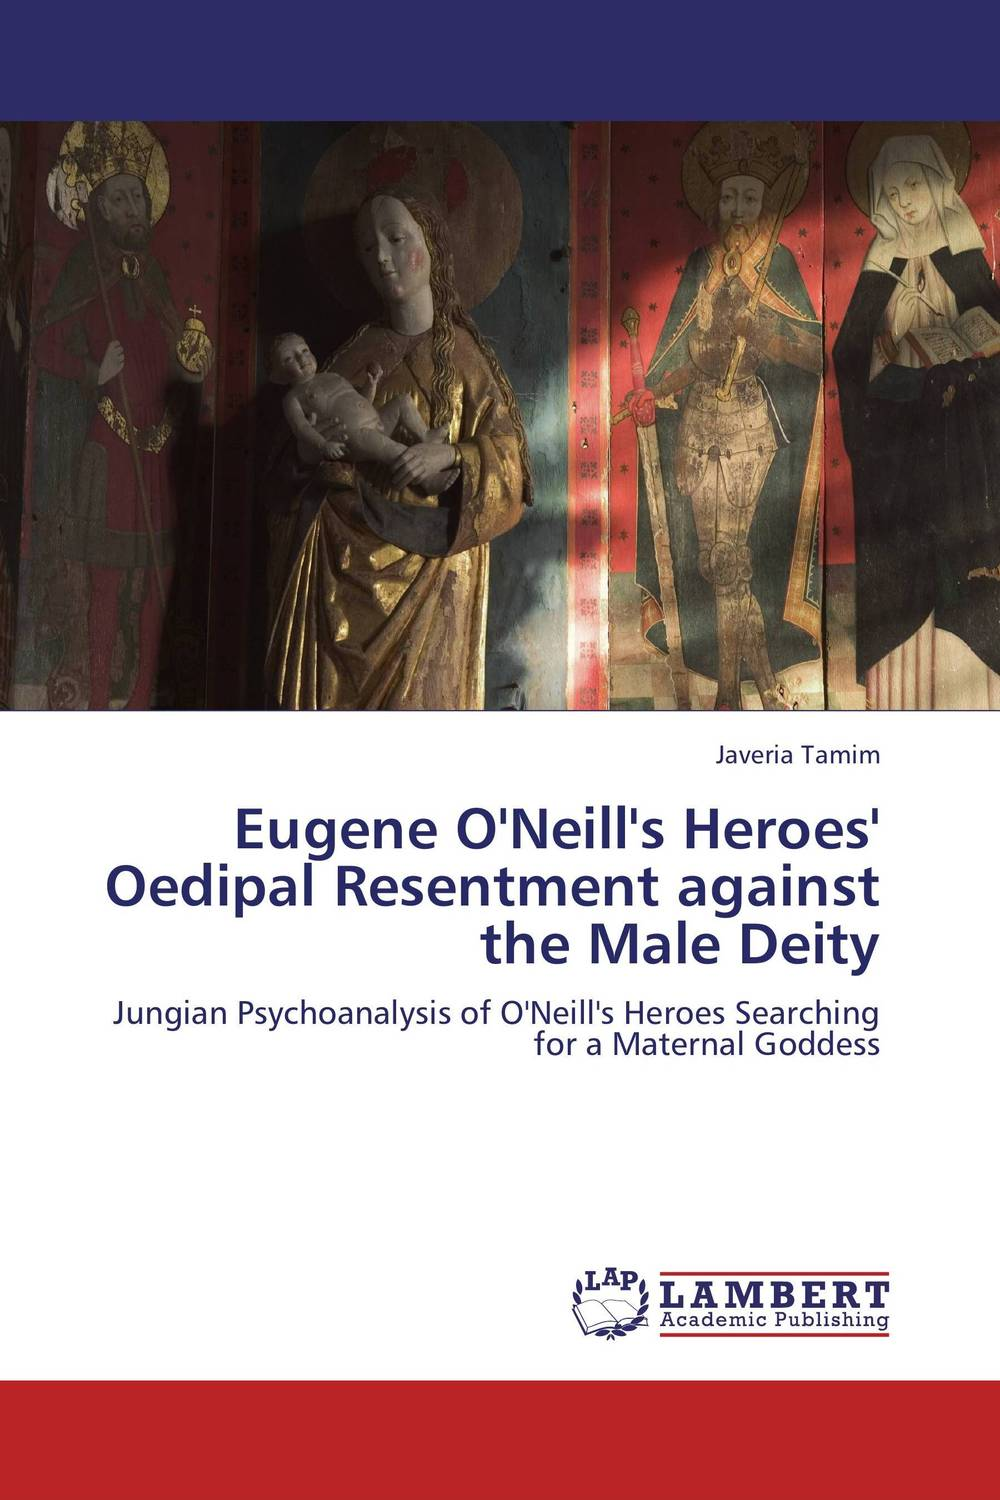 Eugene O'Neill's Heroes' Oedipal Resentment against the Male Deity morgan rice a quest of heroes